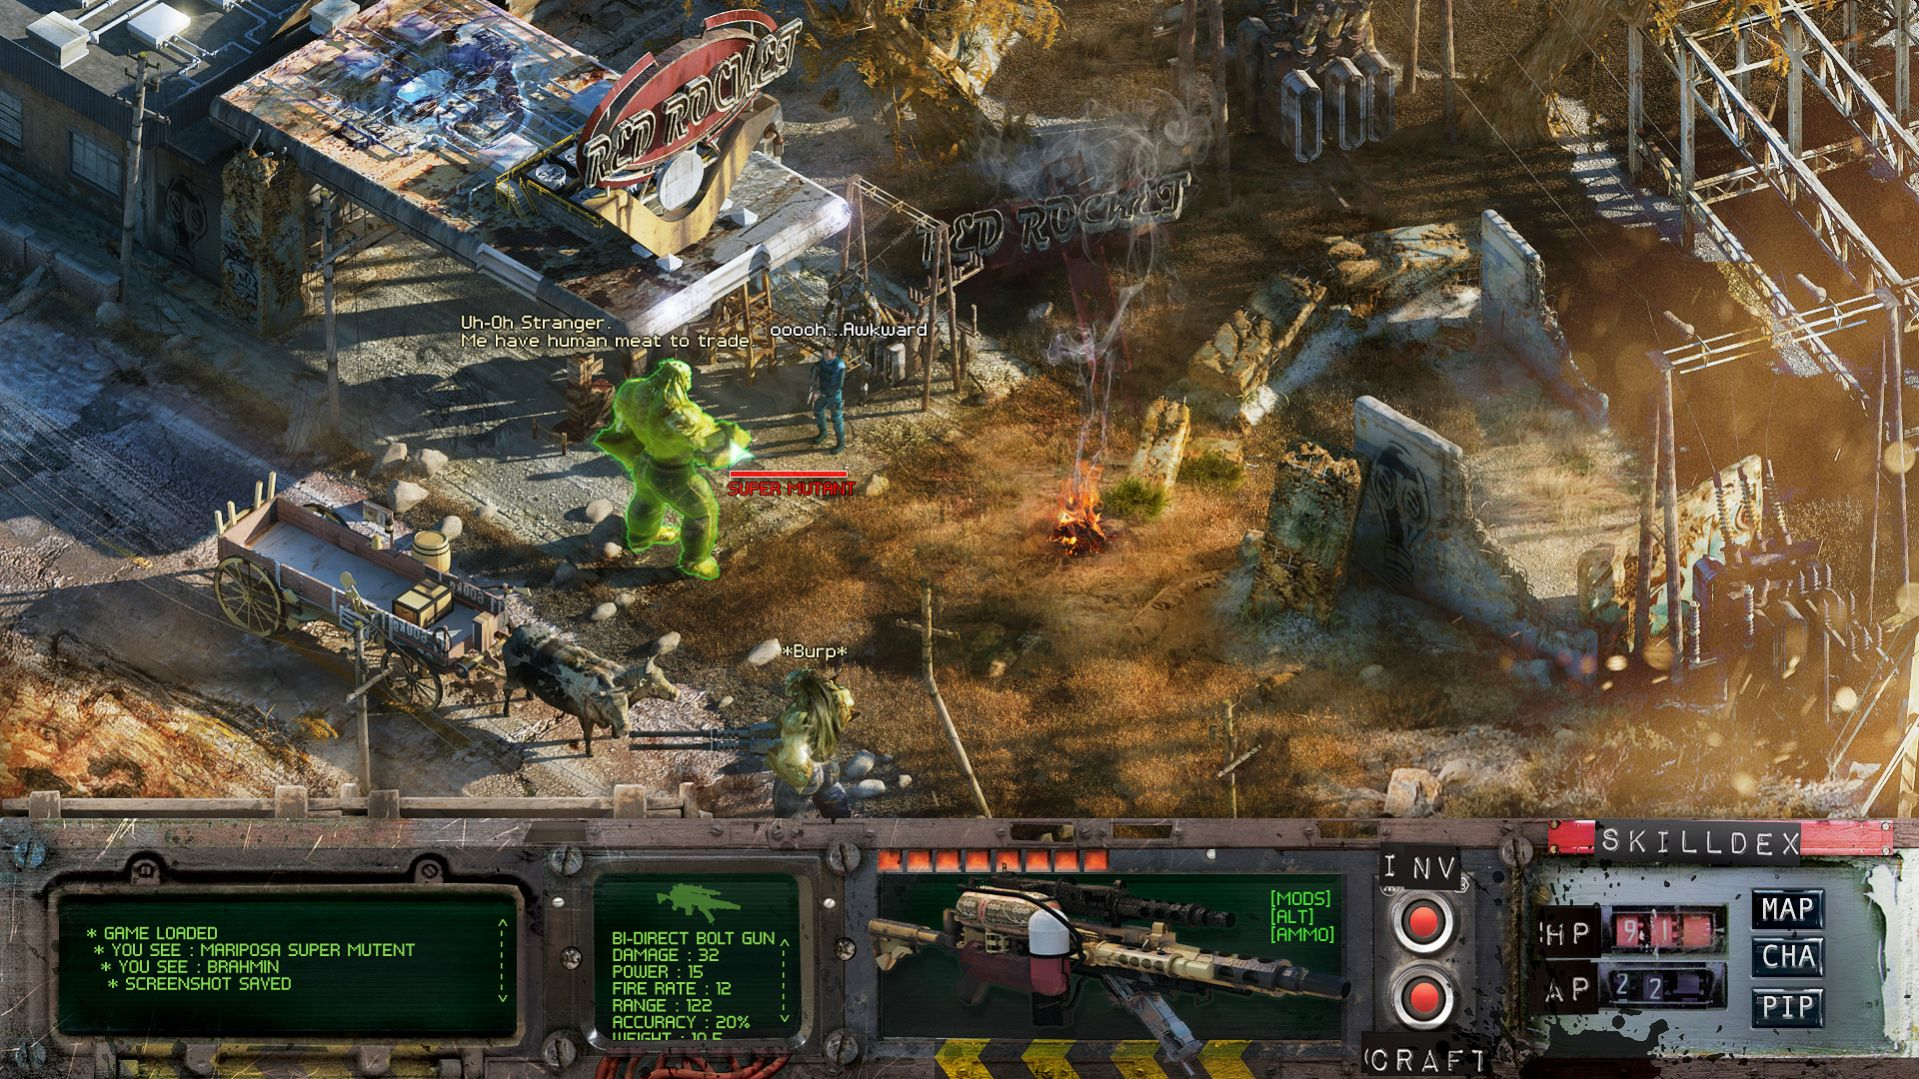 Fallout 4 As A 2D Isometric Game Looks Rad VG247